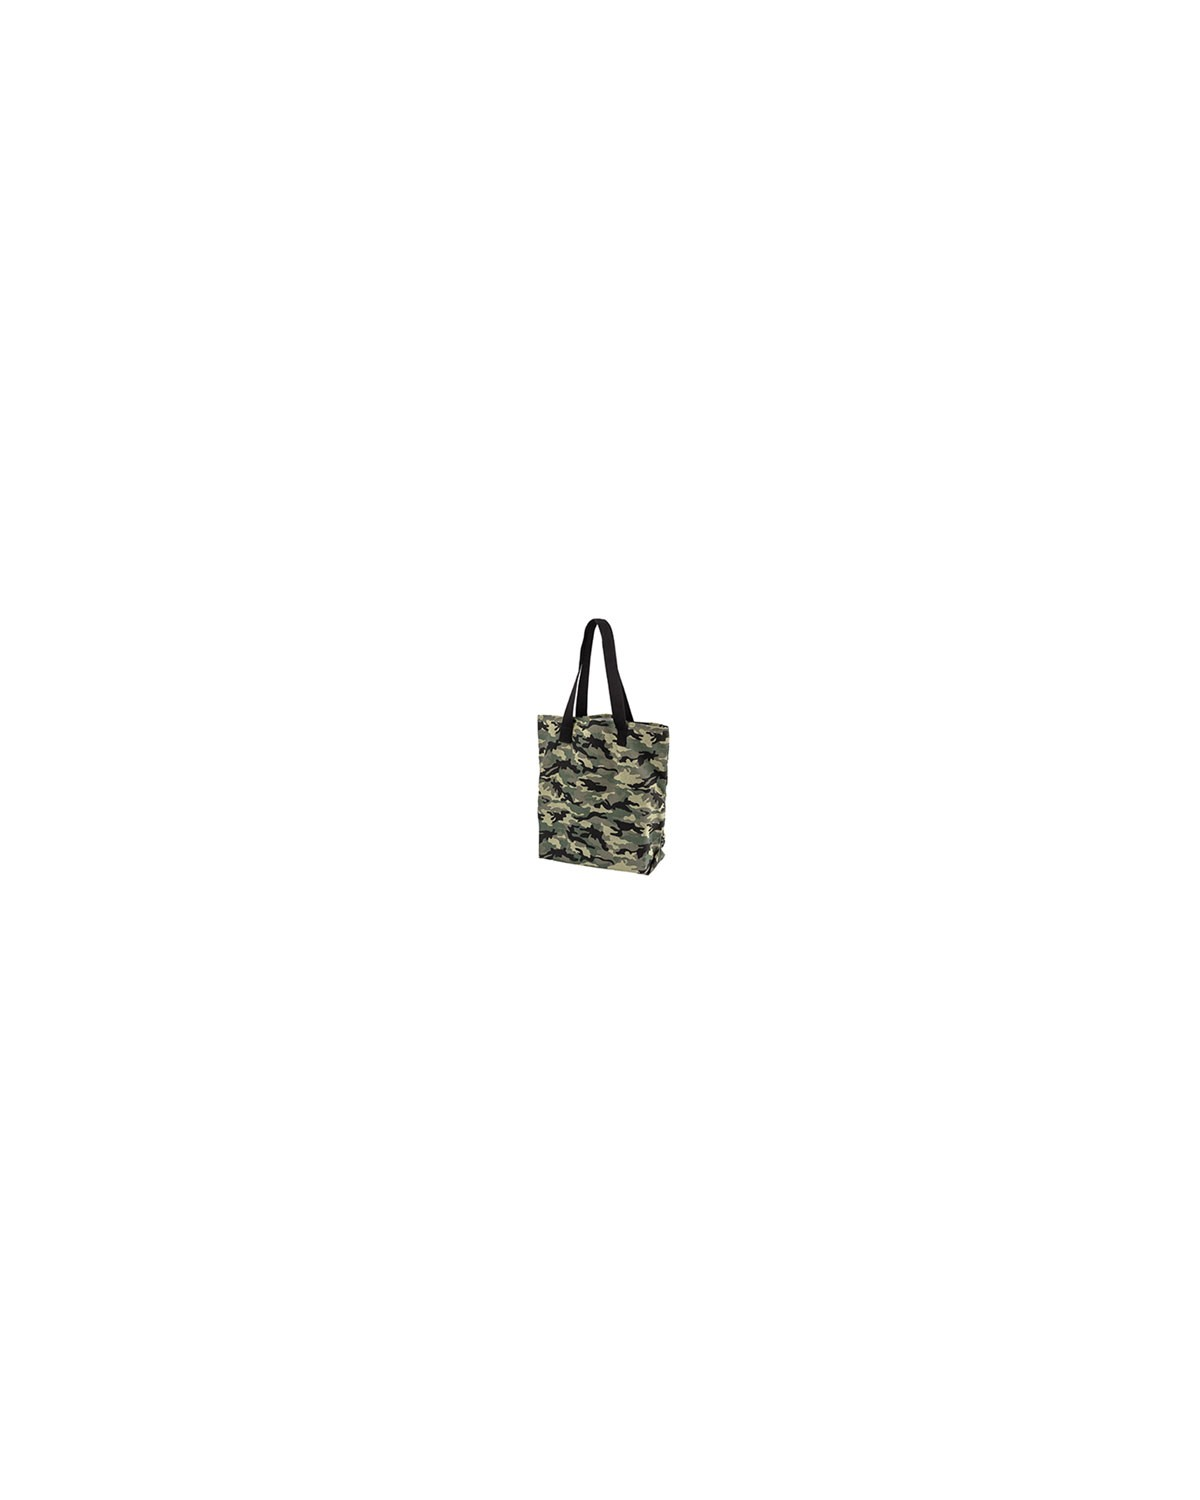 BE066 BAGedge FOREST CAMO